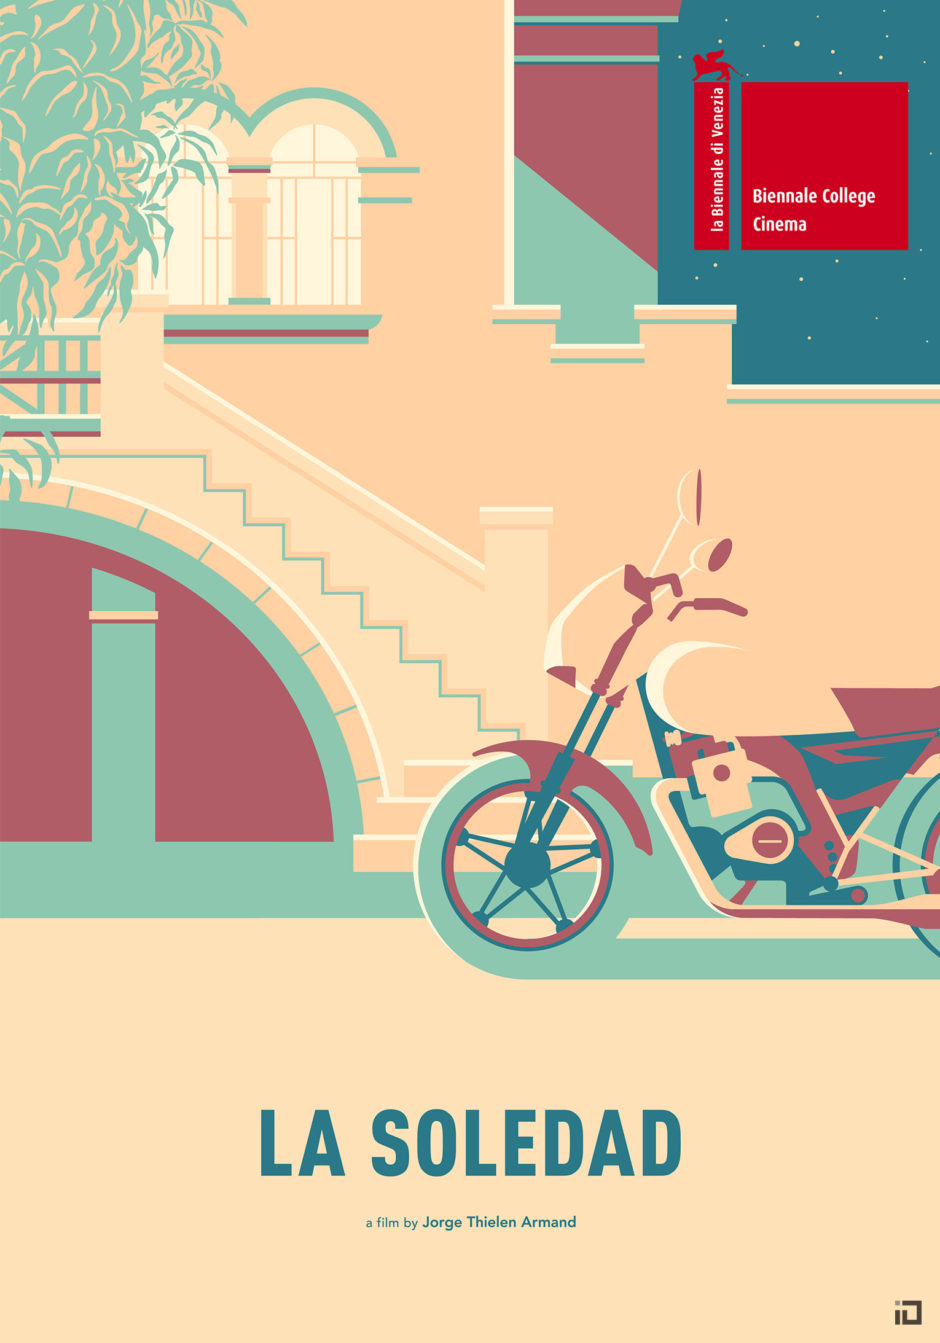 la soledad-official-iconographic-poster_biennale-college-2016